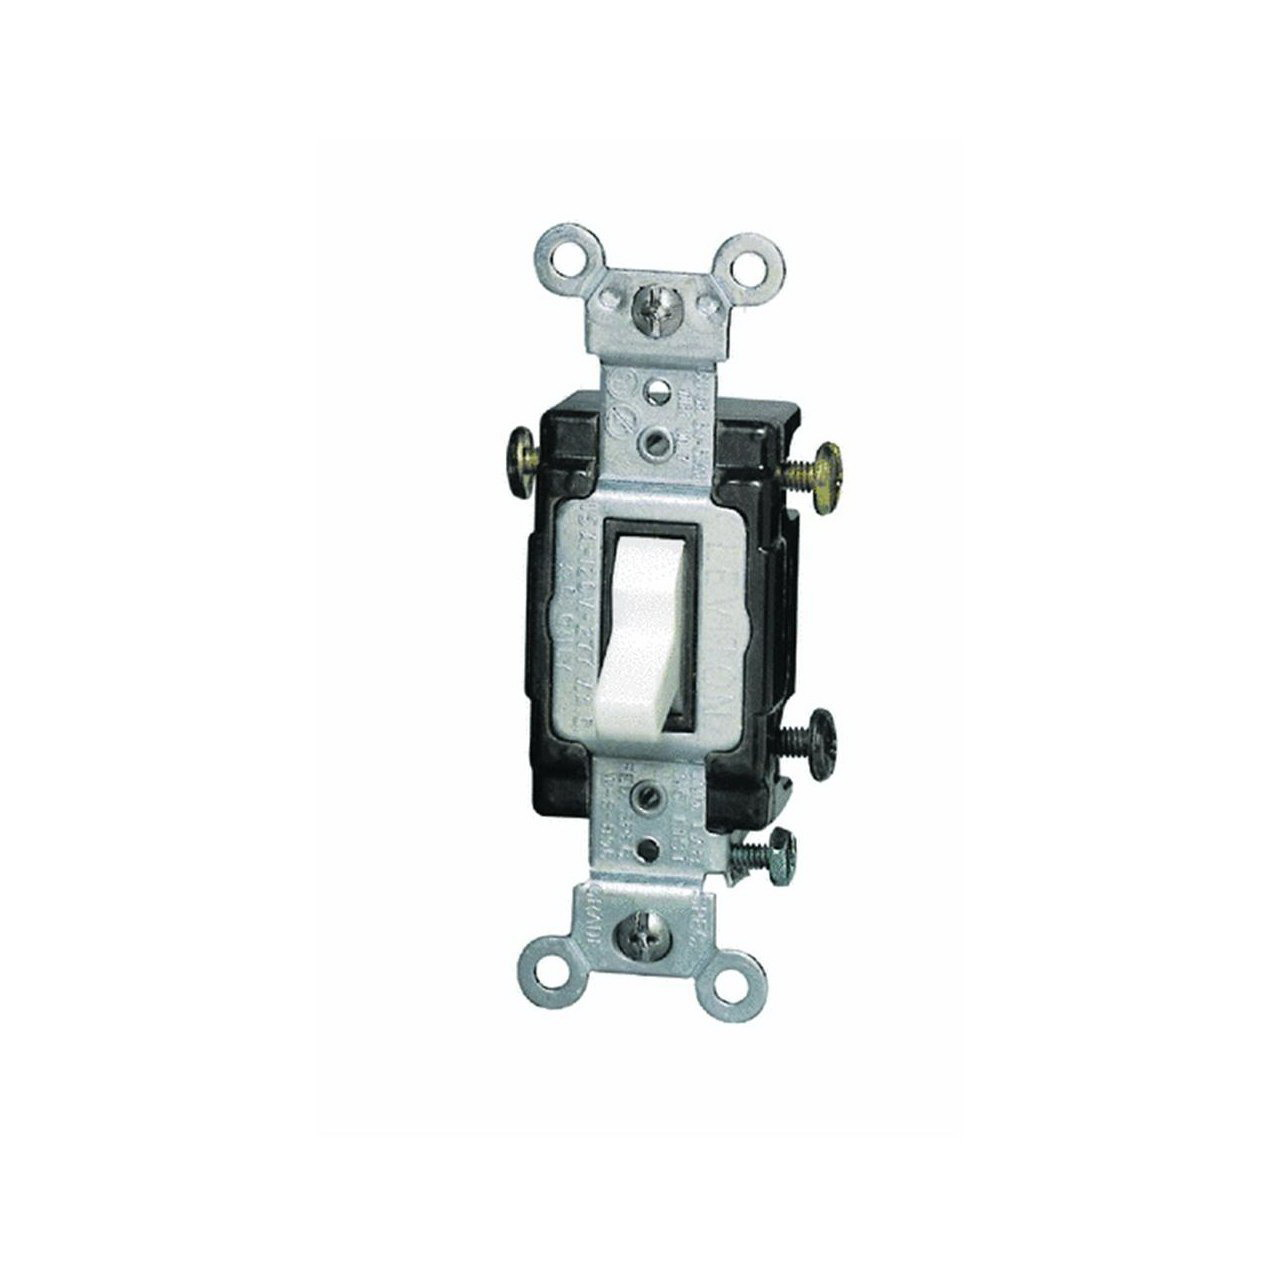 Leviton S02-CS315-2WS Grounded Toggle Switch, 120 VAC, 15 A, 1 P, White